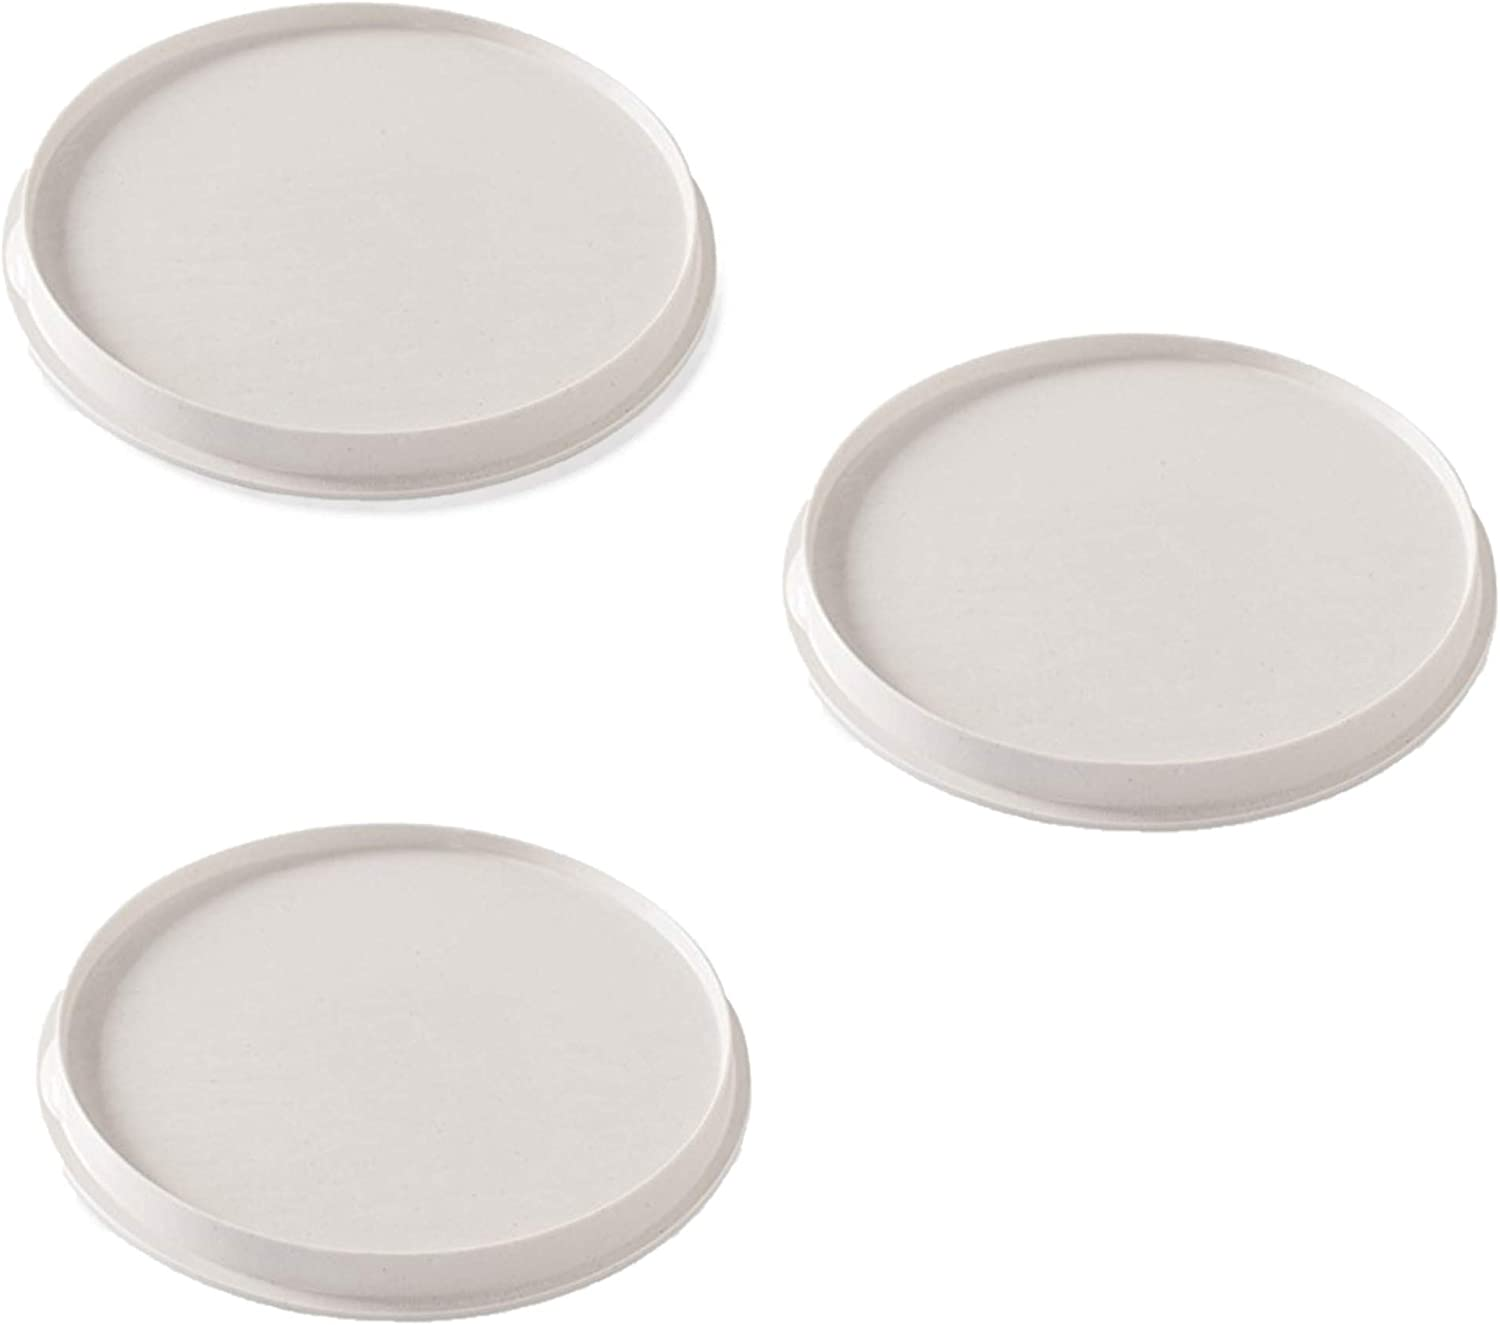 Nordic Ware Round Microwave Bacon and Meat Cooker, Set of 3